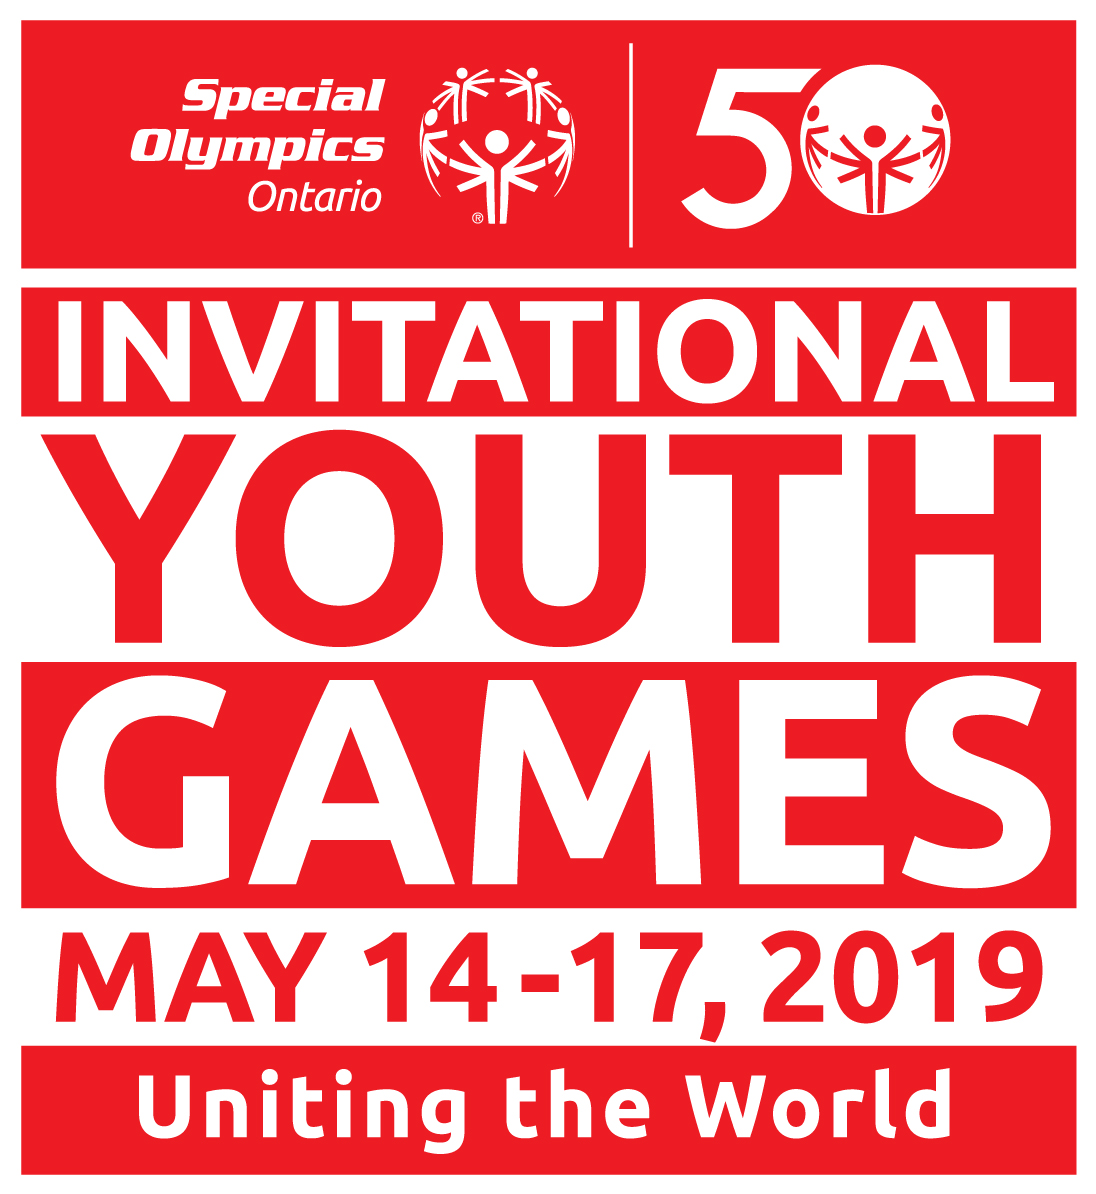 Bmlss Sports Teams To Compete At Special Olympics Games In